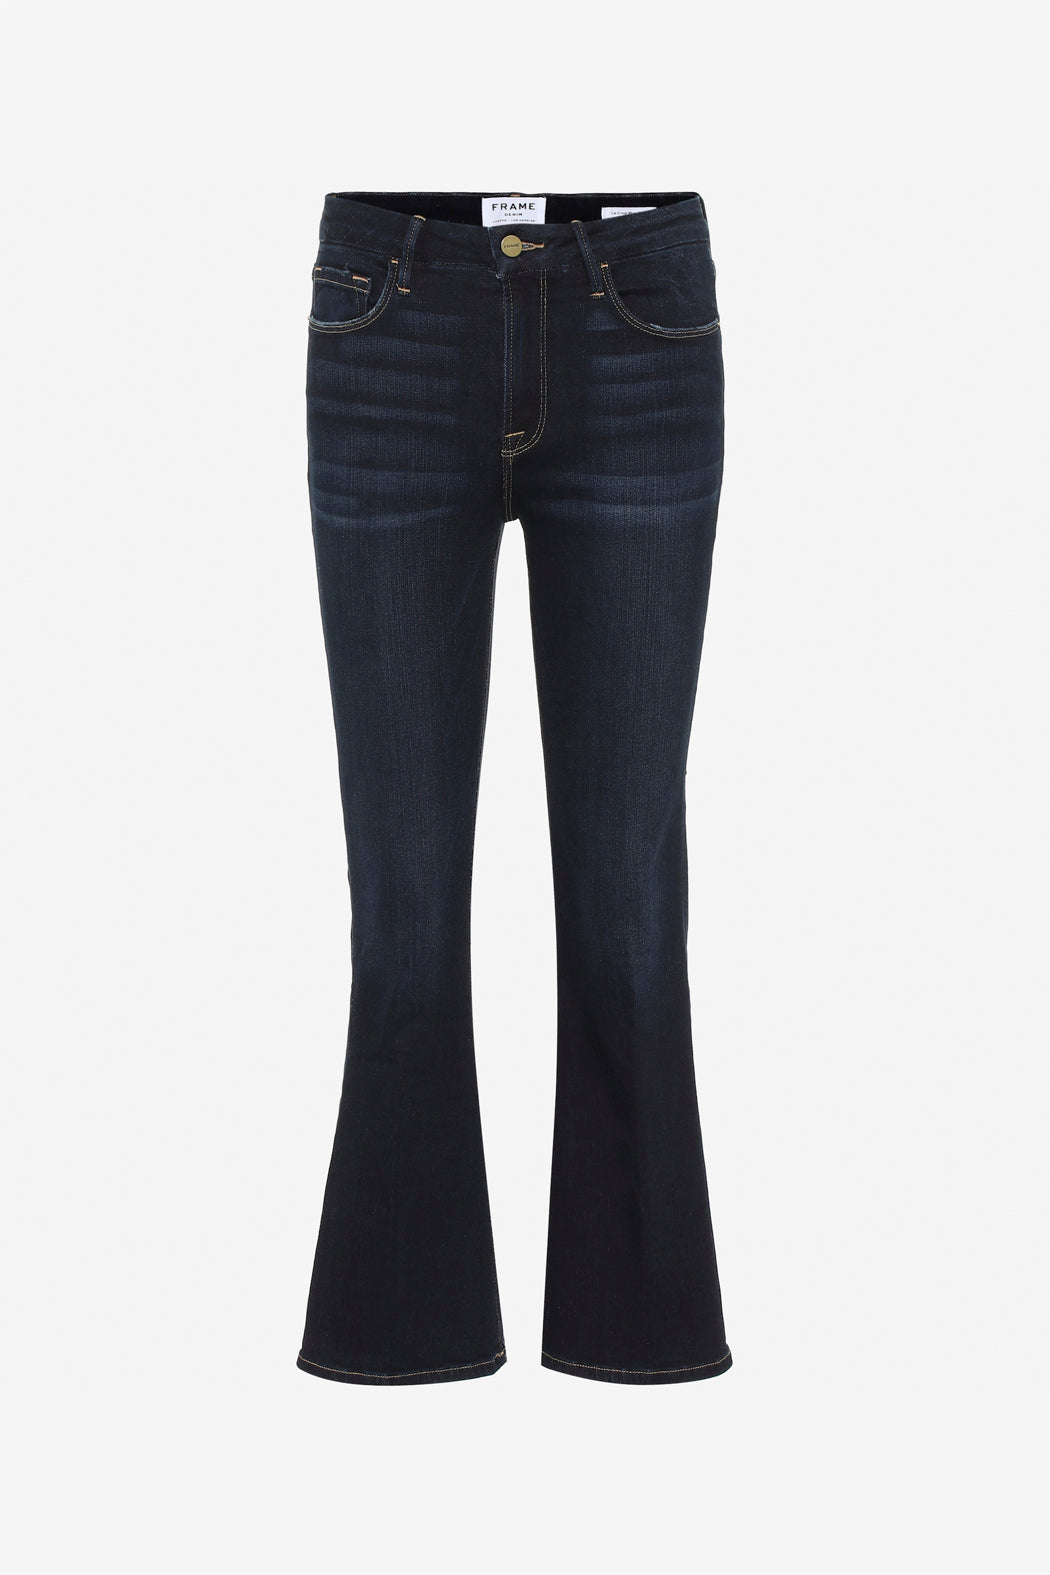 Blue flared jeans with bootcut and button zip closure